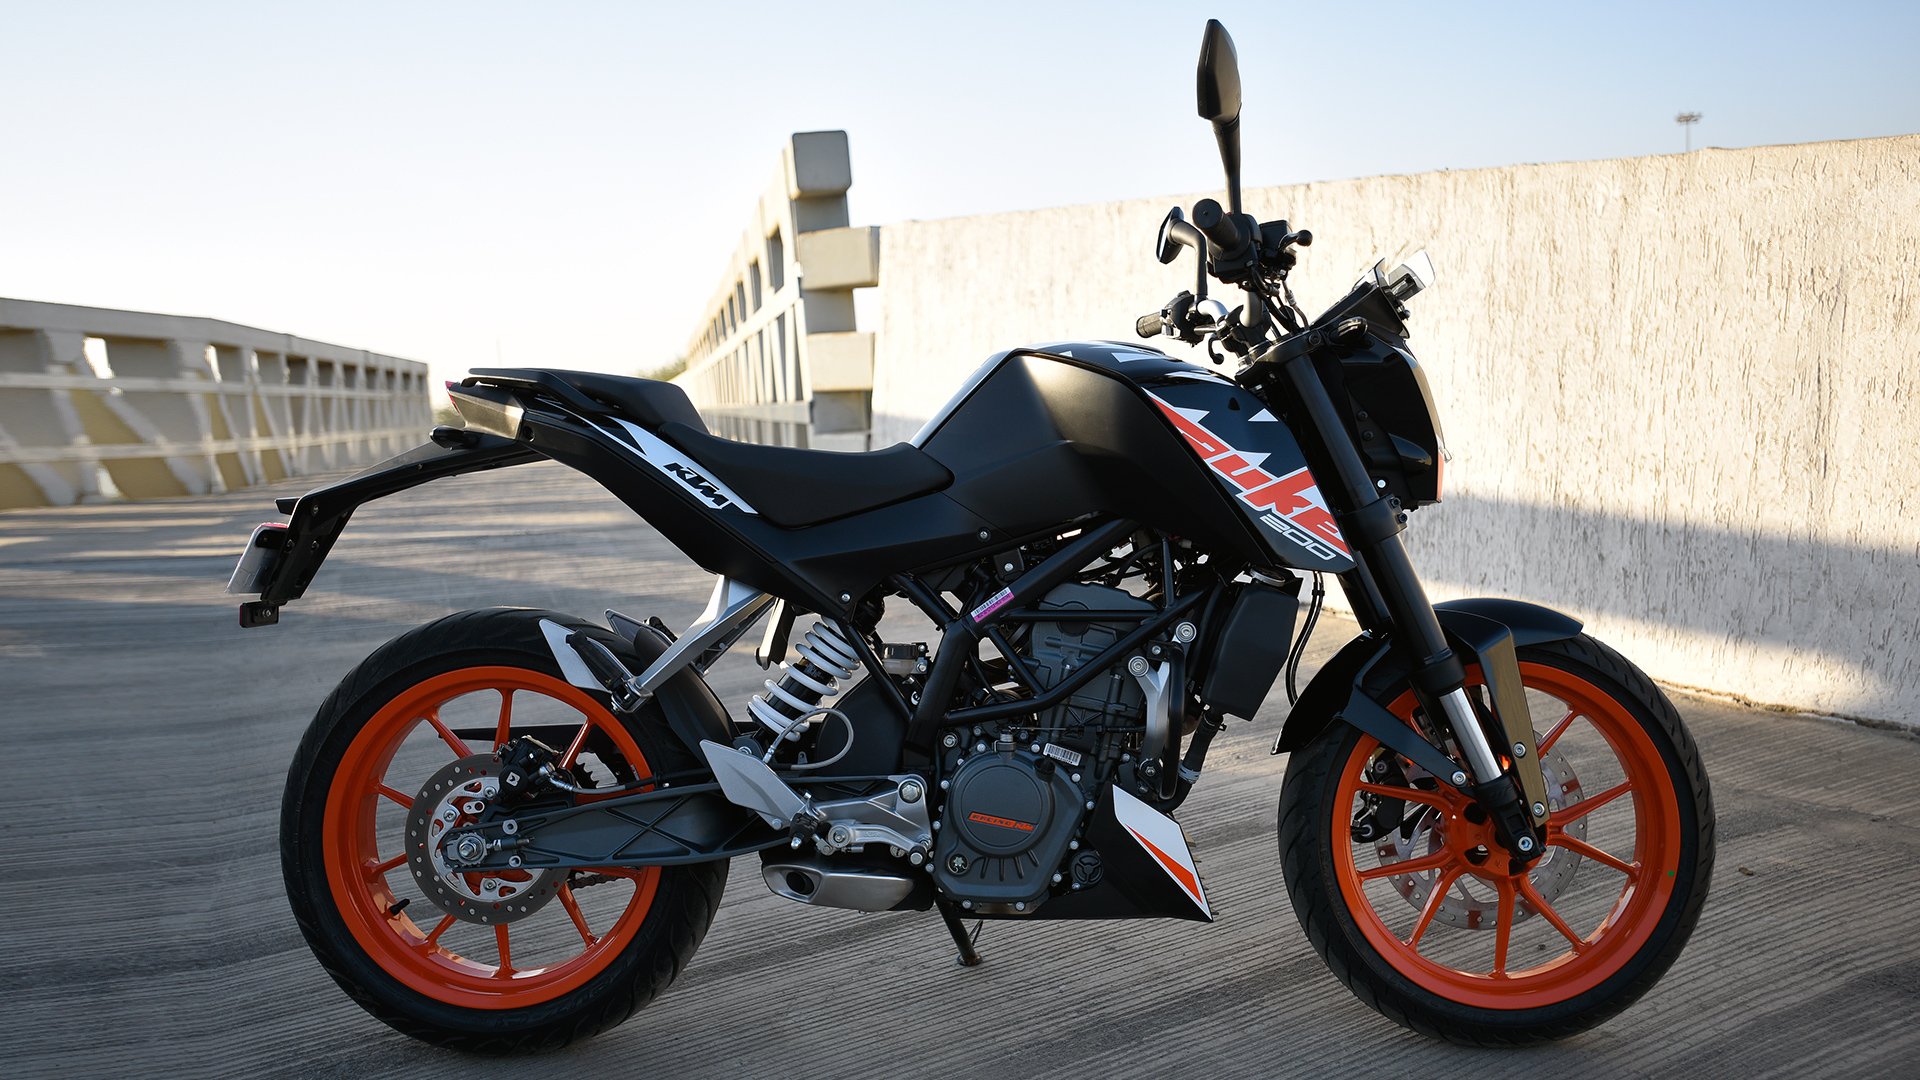 ktm 200 duke 2015 std - price, mileage, reviews, specification